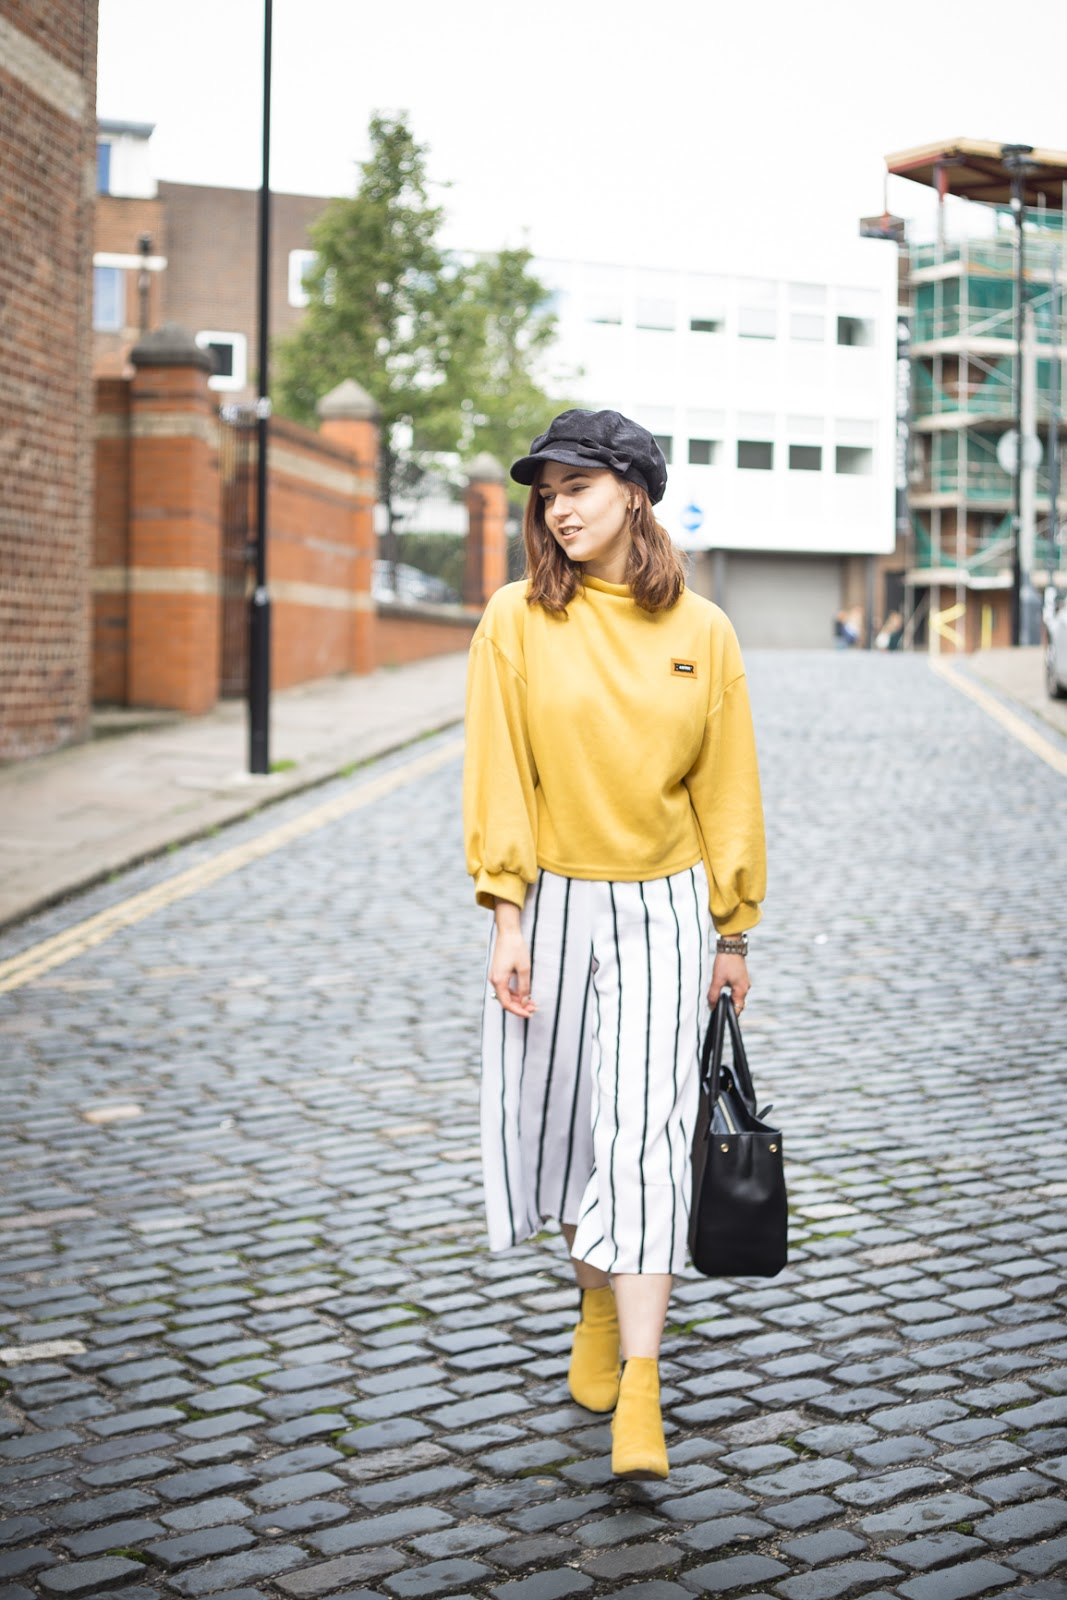 yellow outfit walking